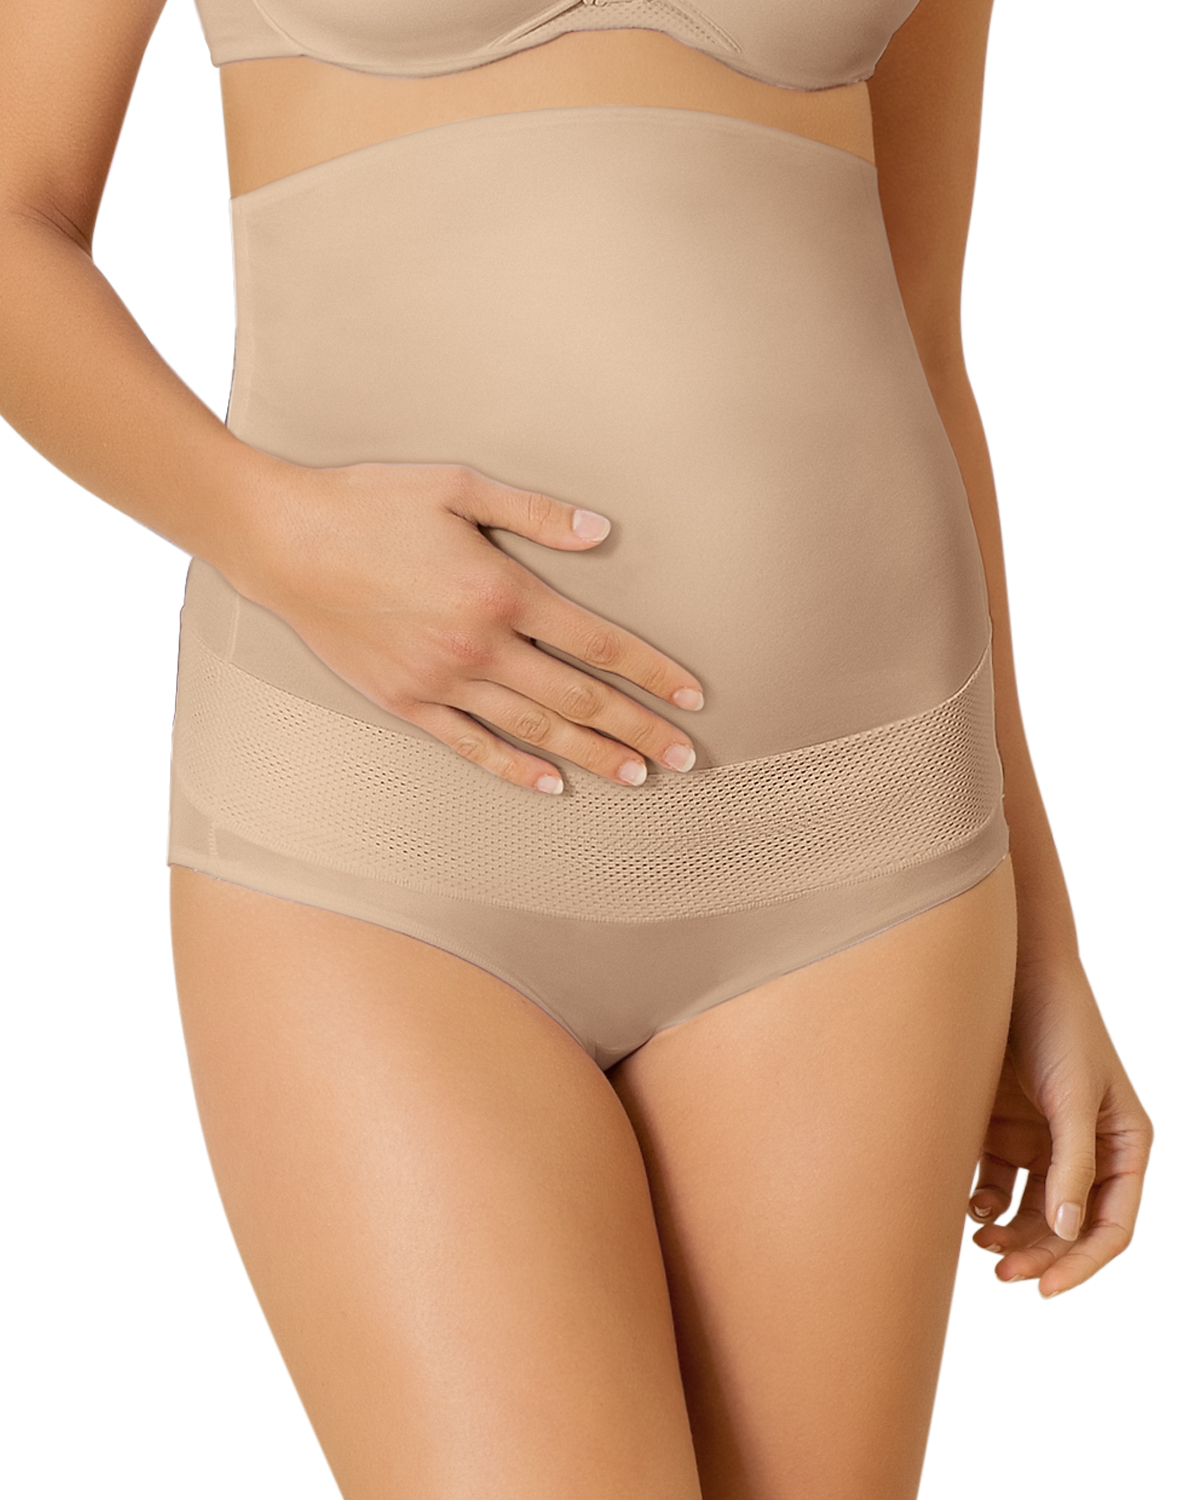 maternity support panty-802- Nude-MainImage